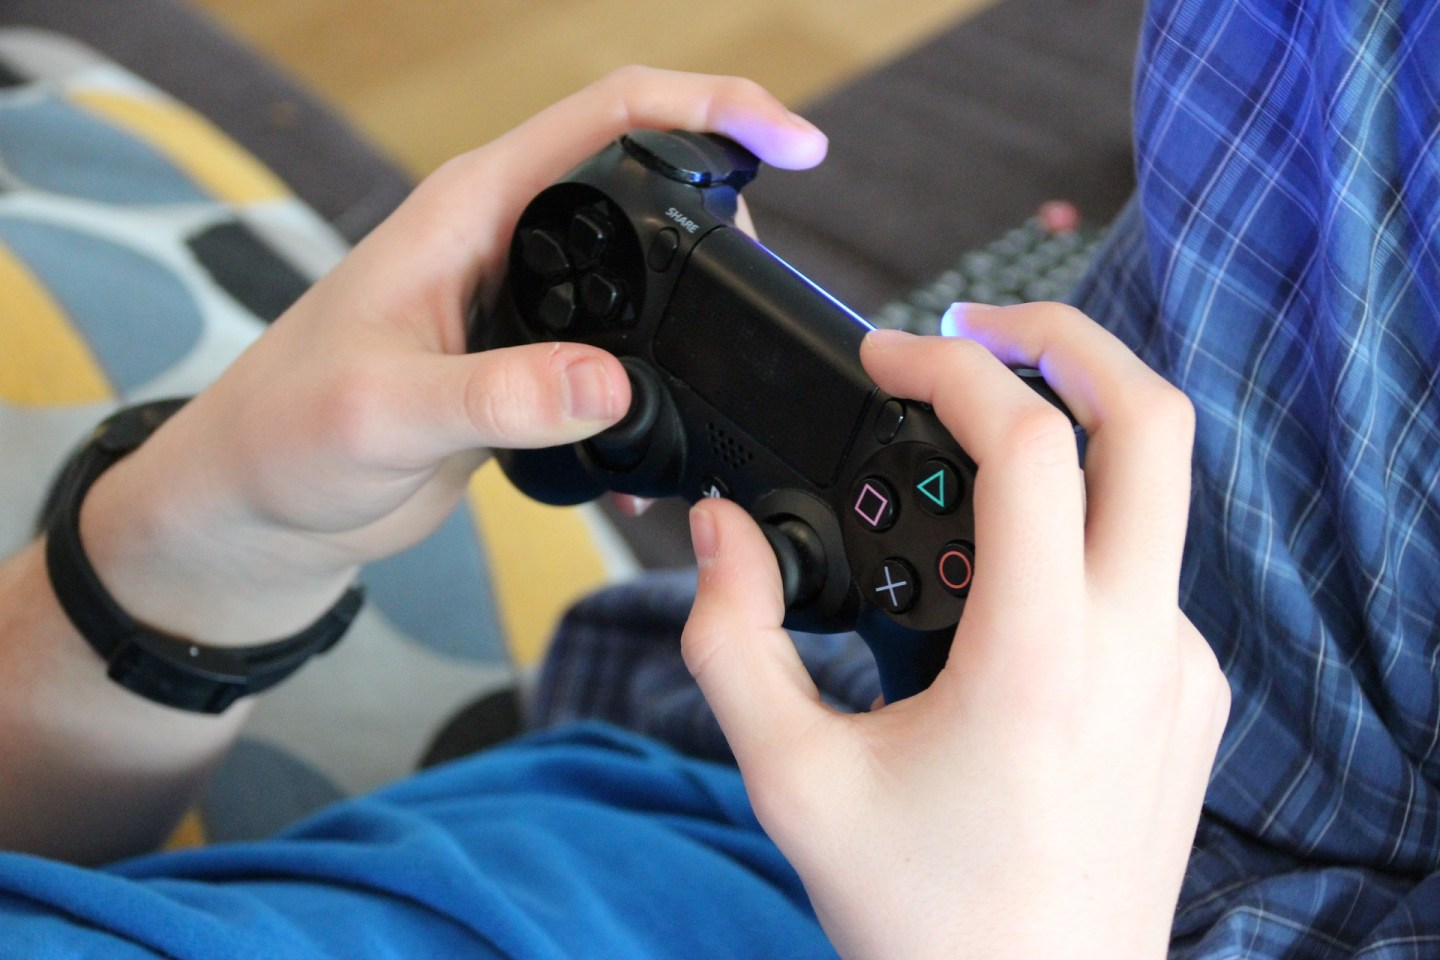 A photo of a child's hands holding a Playstation game controller as he plays a game.